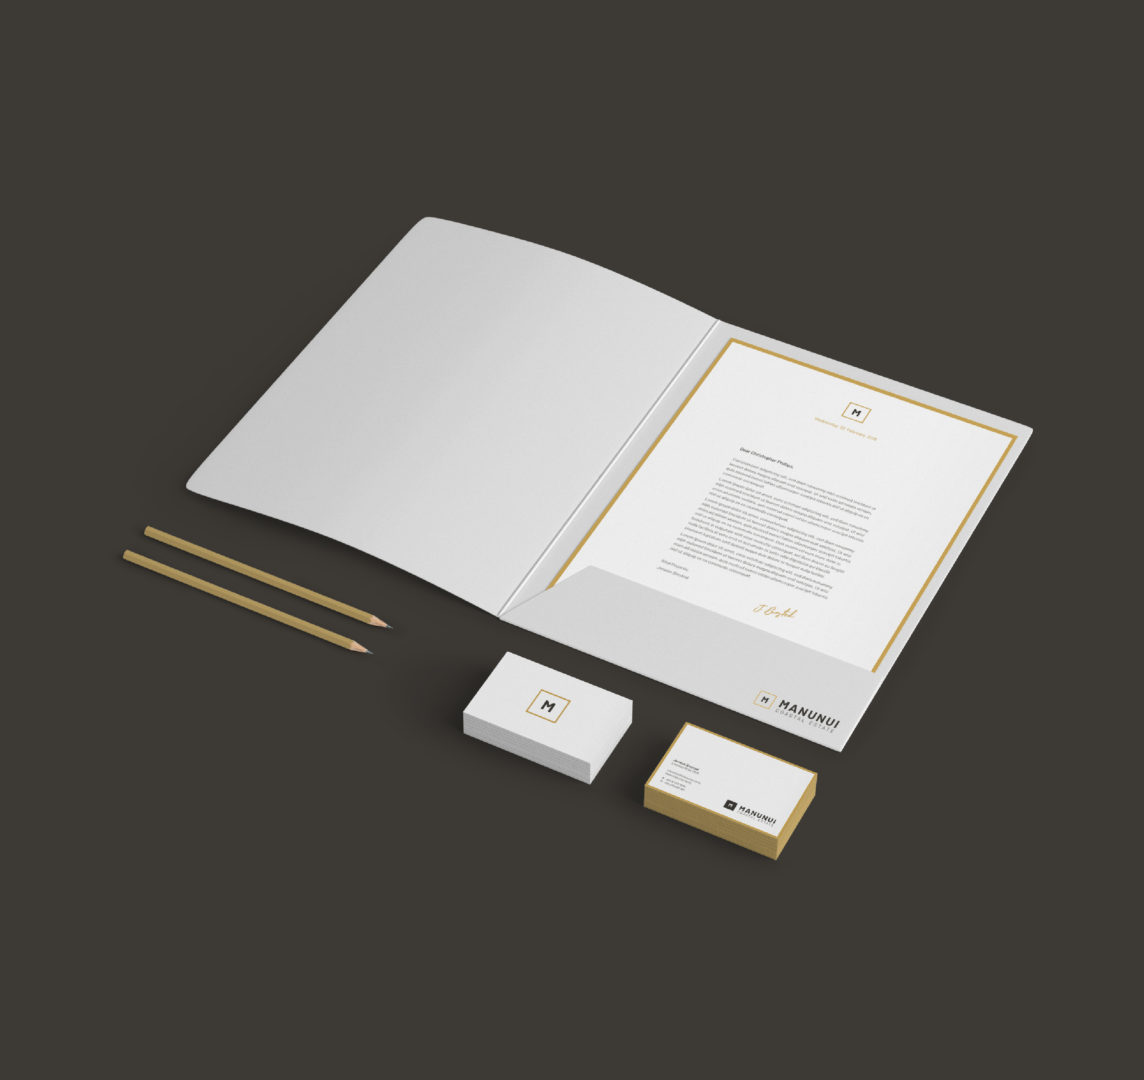 Manunui letter business cards pencil folder